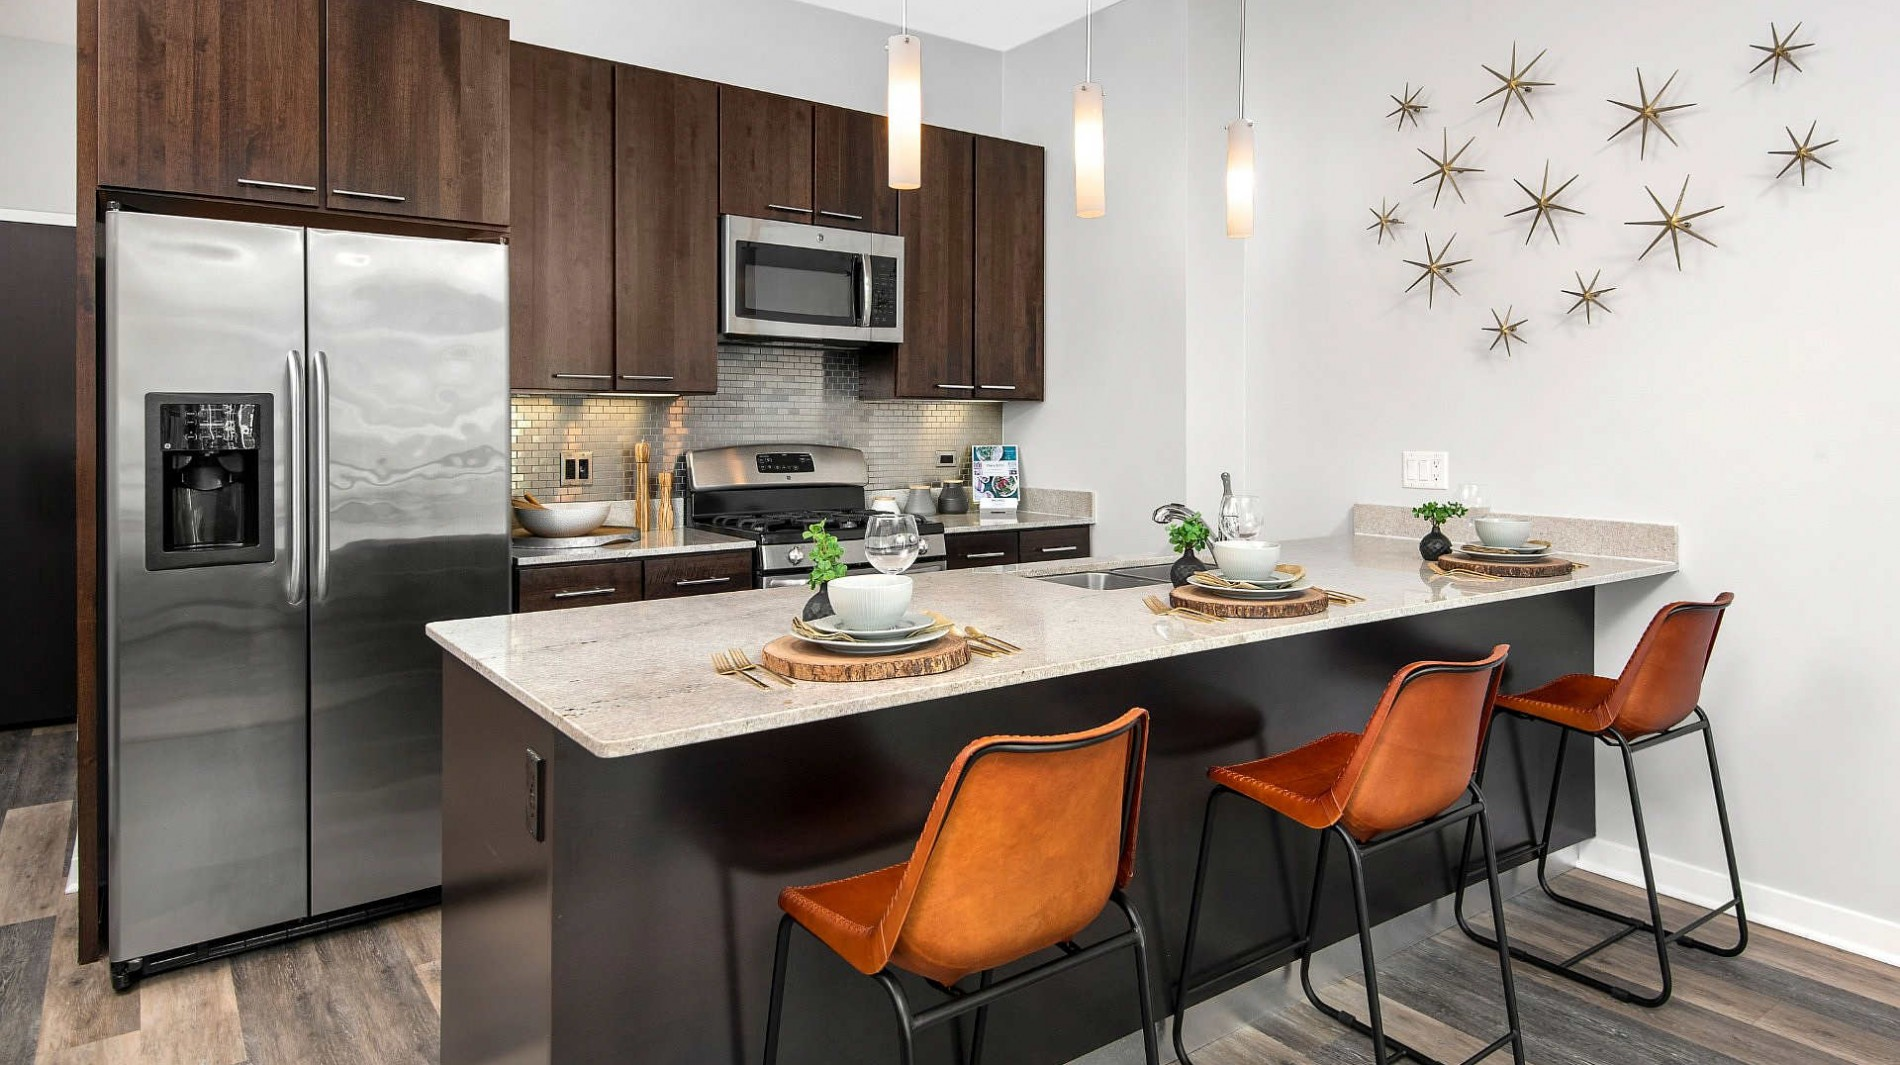 Upscale finishes include granite countertops and GE ENERGY STAR stainless steel appliances.